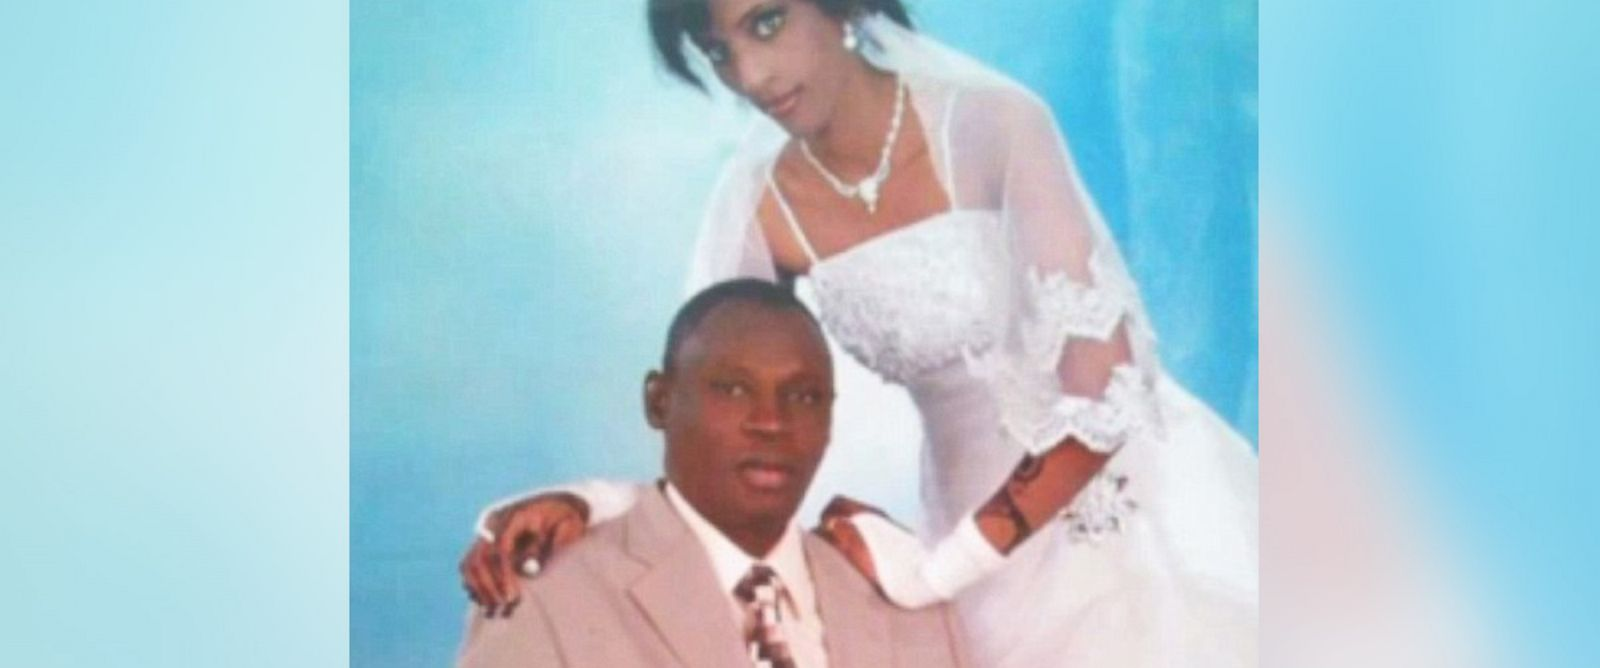 PHOTO: Meriam Yehya Ibrahim Ishag, right, is pictured in this undated image with her husband Daniel Wani, left. Her lawyers plan to appeal a ruling by Sudans court that she be hanged for apostasy after marrying a Christian and converting.